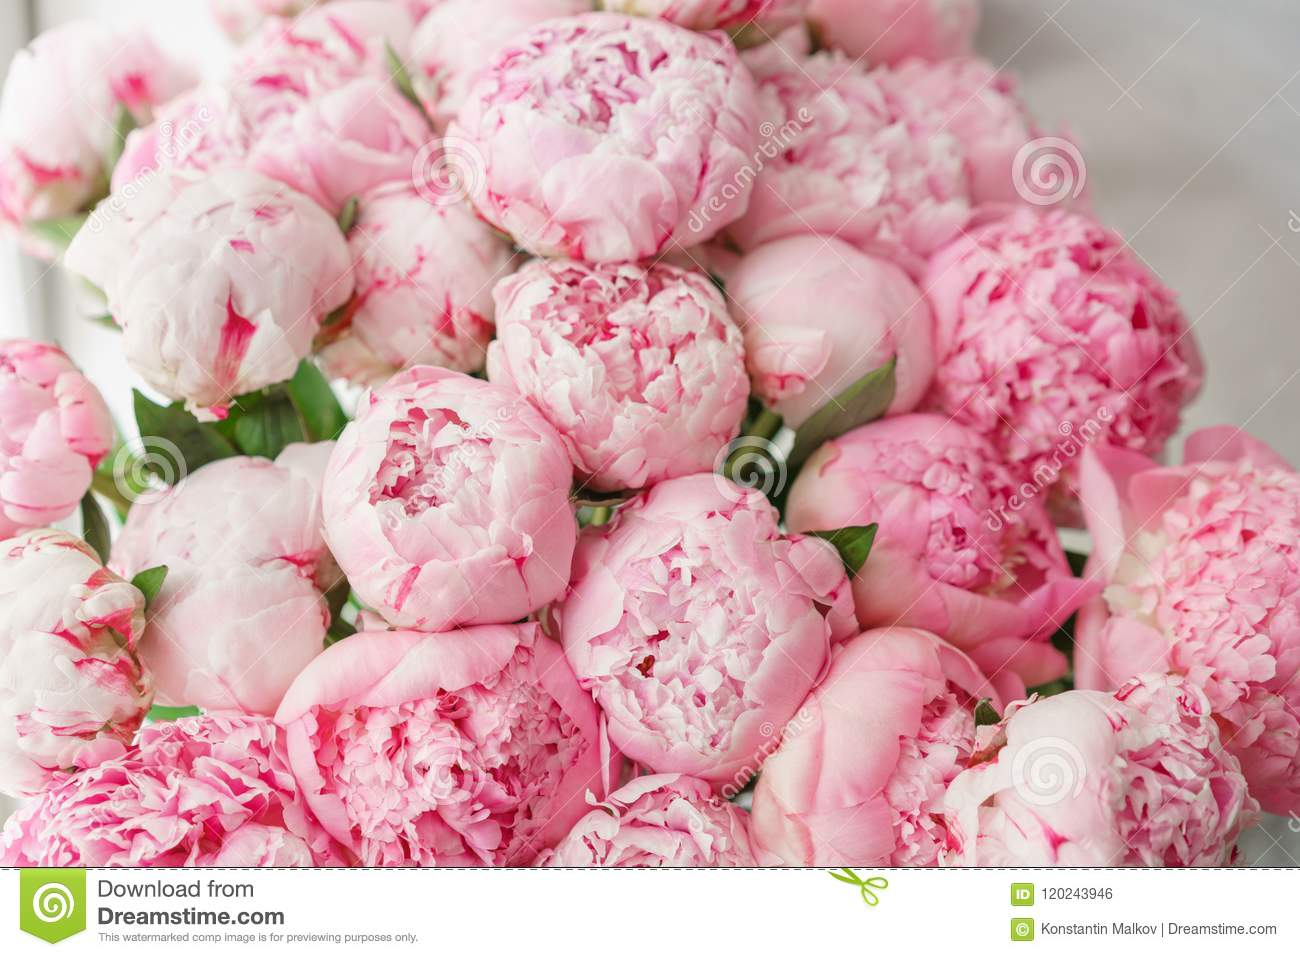 wallpaper. lovely flowers pink peonies . floral compositions